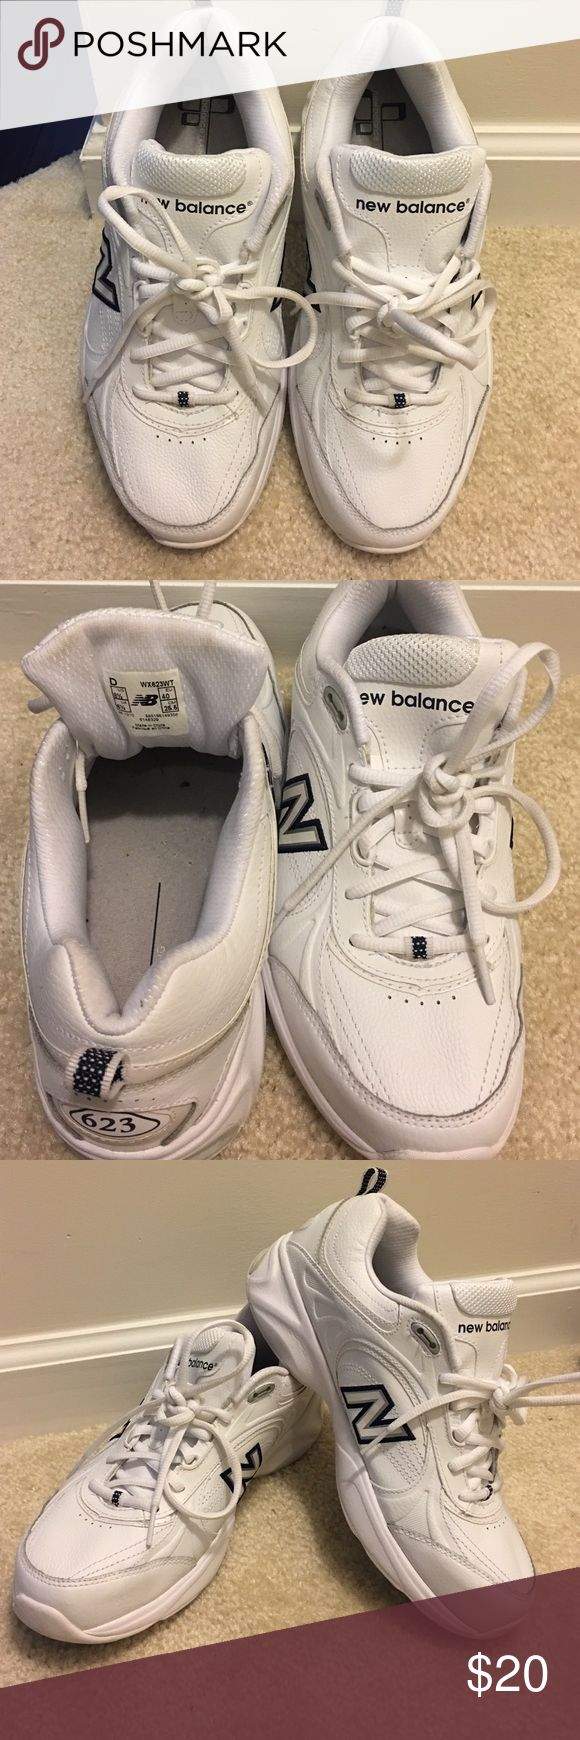 NEW BALANCE 623 Women White NEW BALANCE 623 Sneakers New Balance Shoes Athletic Shoes